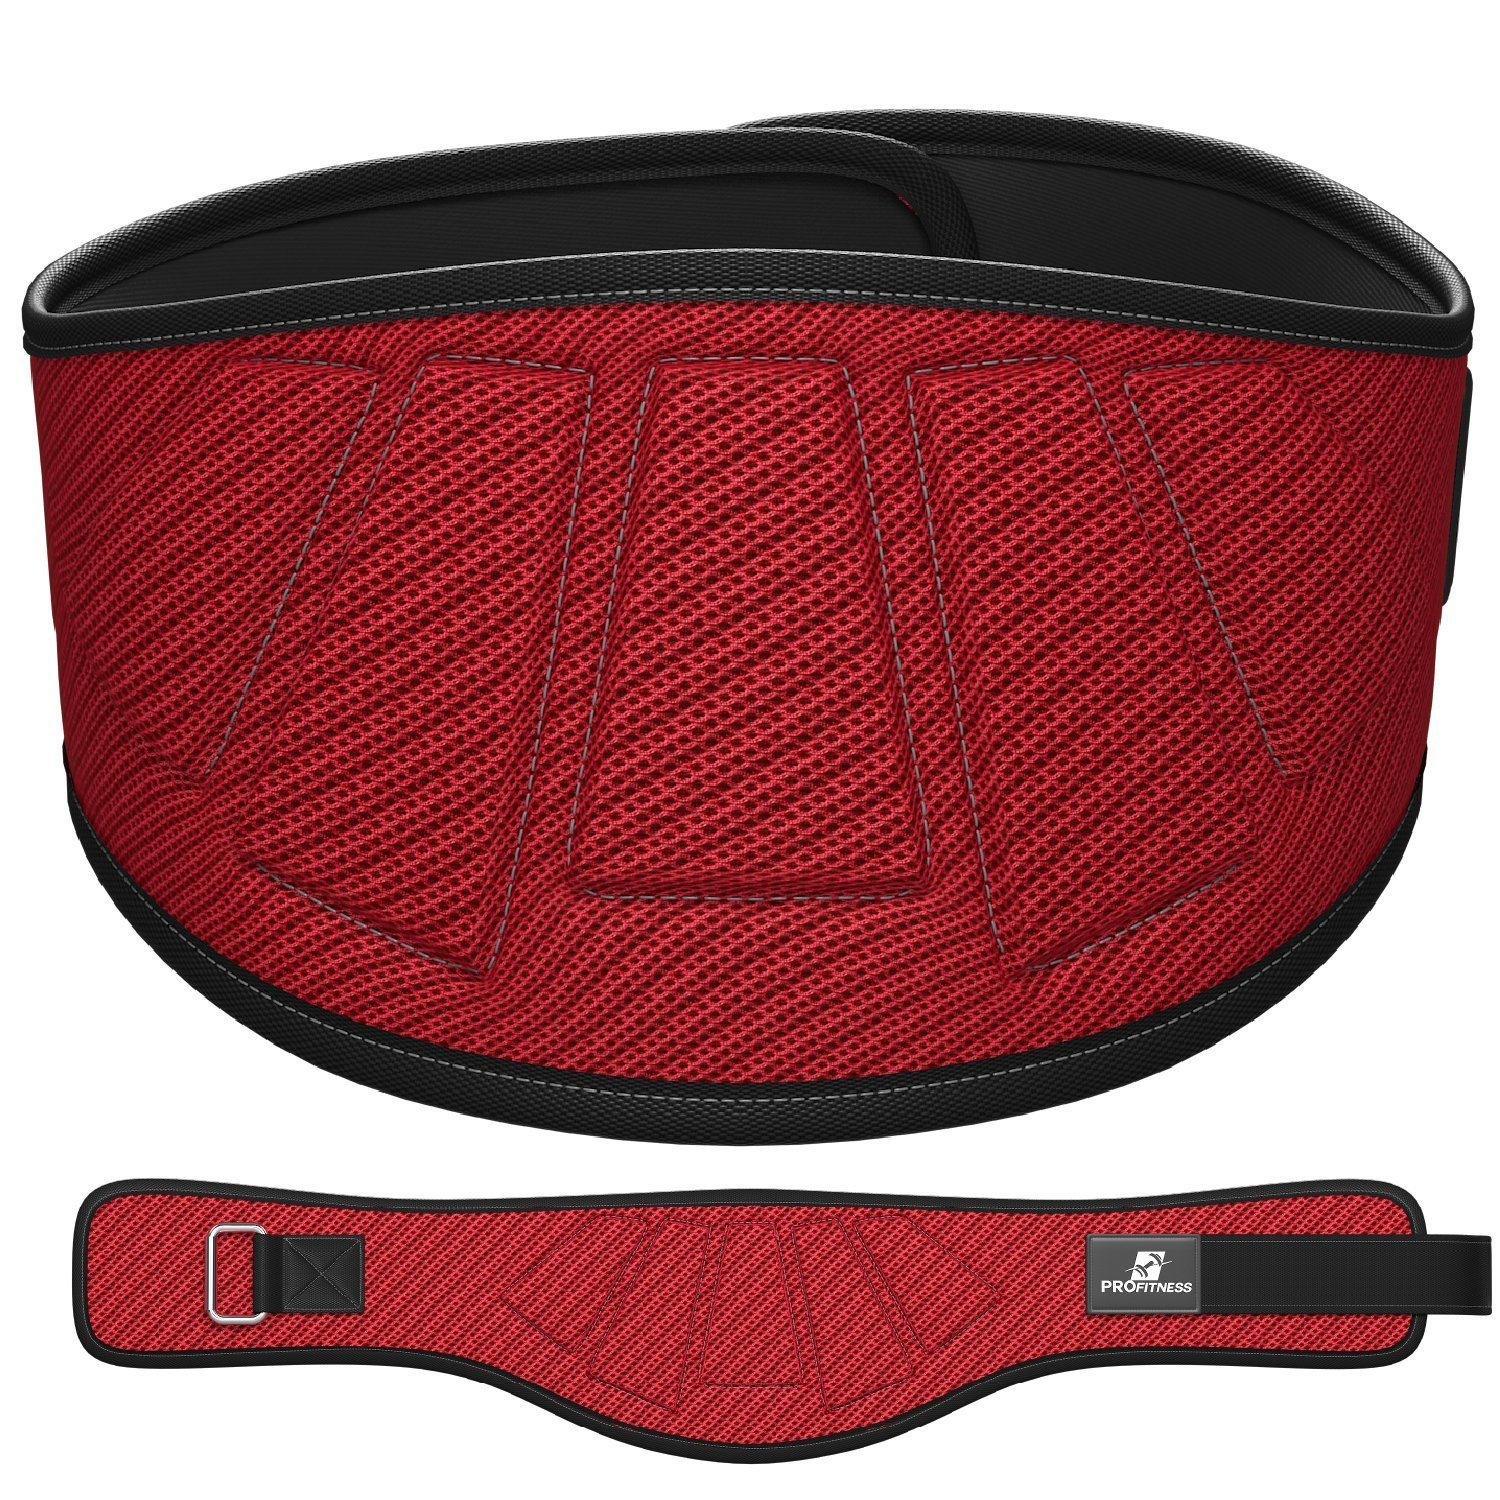 6-Inch-Wide – Proper Weight lifting Form – ProFitness Weightlifting Belt